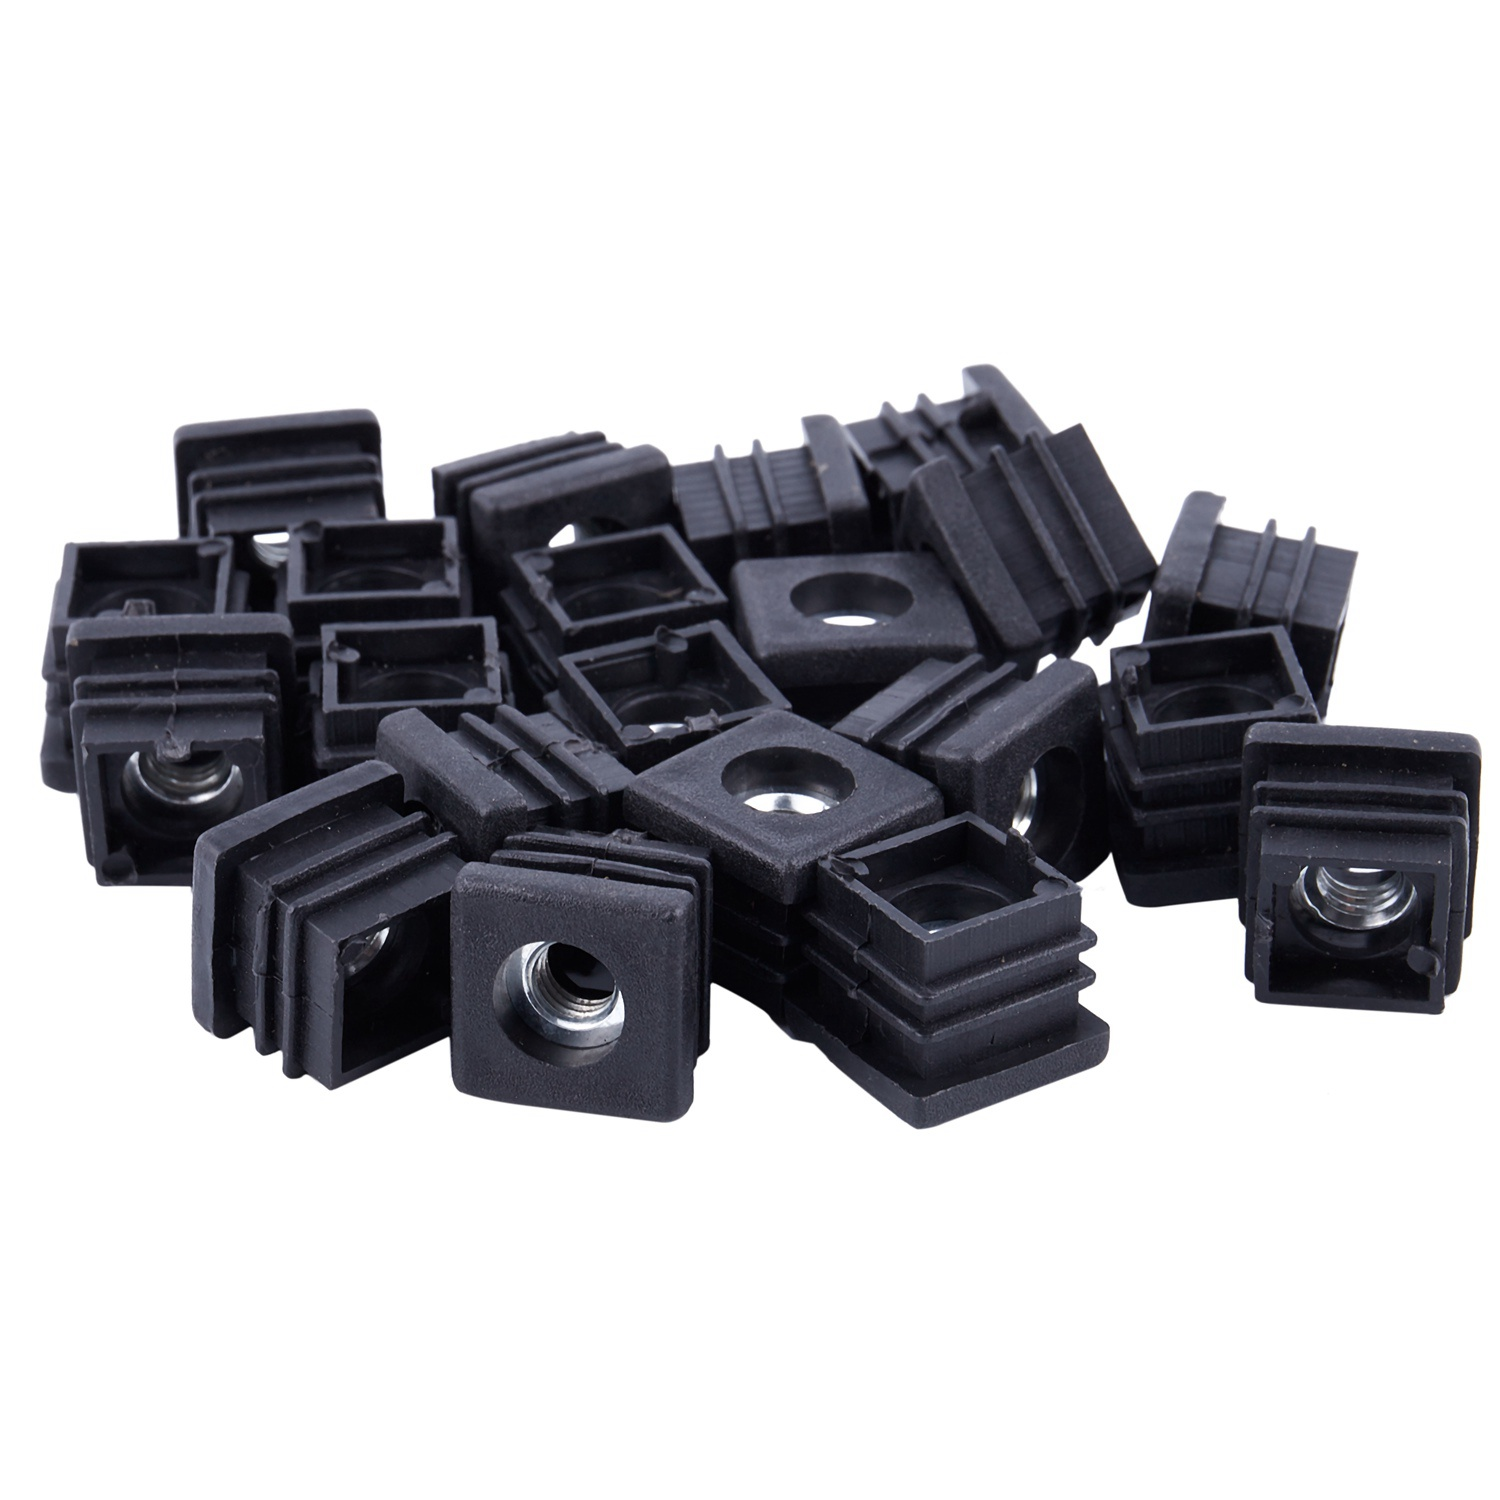 Promotion! 20Pcs Black Square Tubing Pipe End Caps Insert Plugs M8 Thread 20x20mm